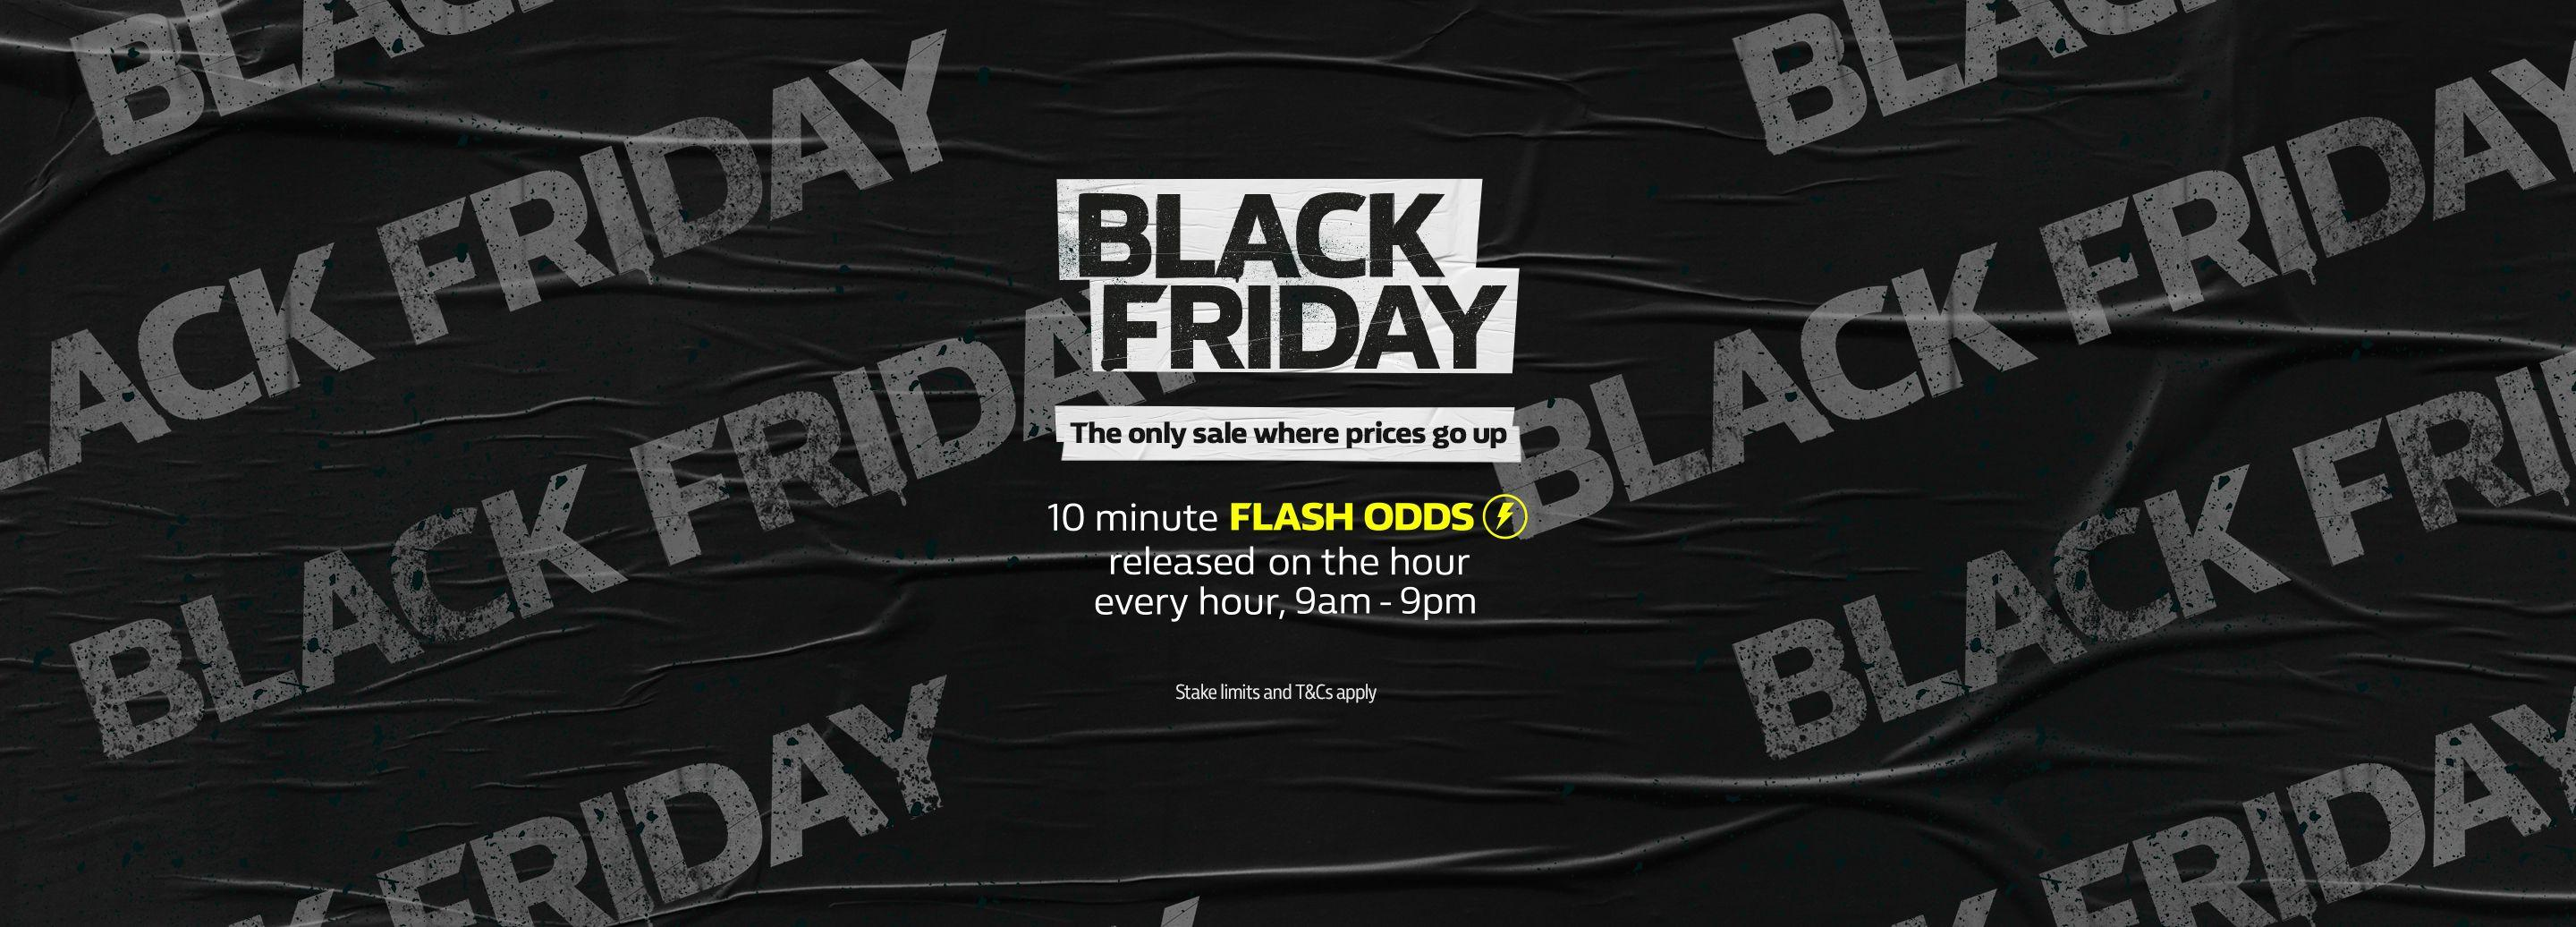 Black Friday 2018 Promotions Flash Odds Released Every Hour